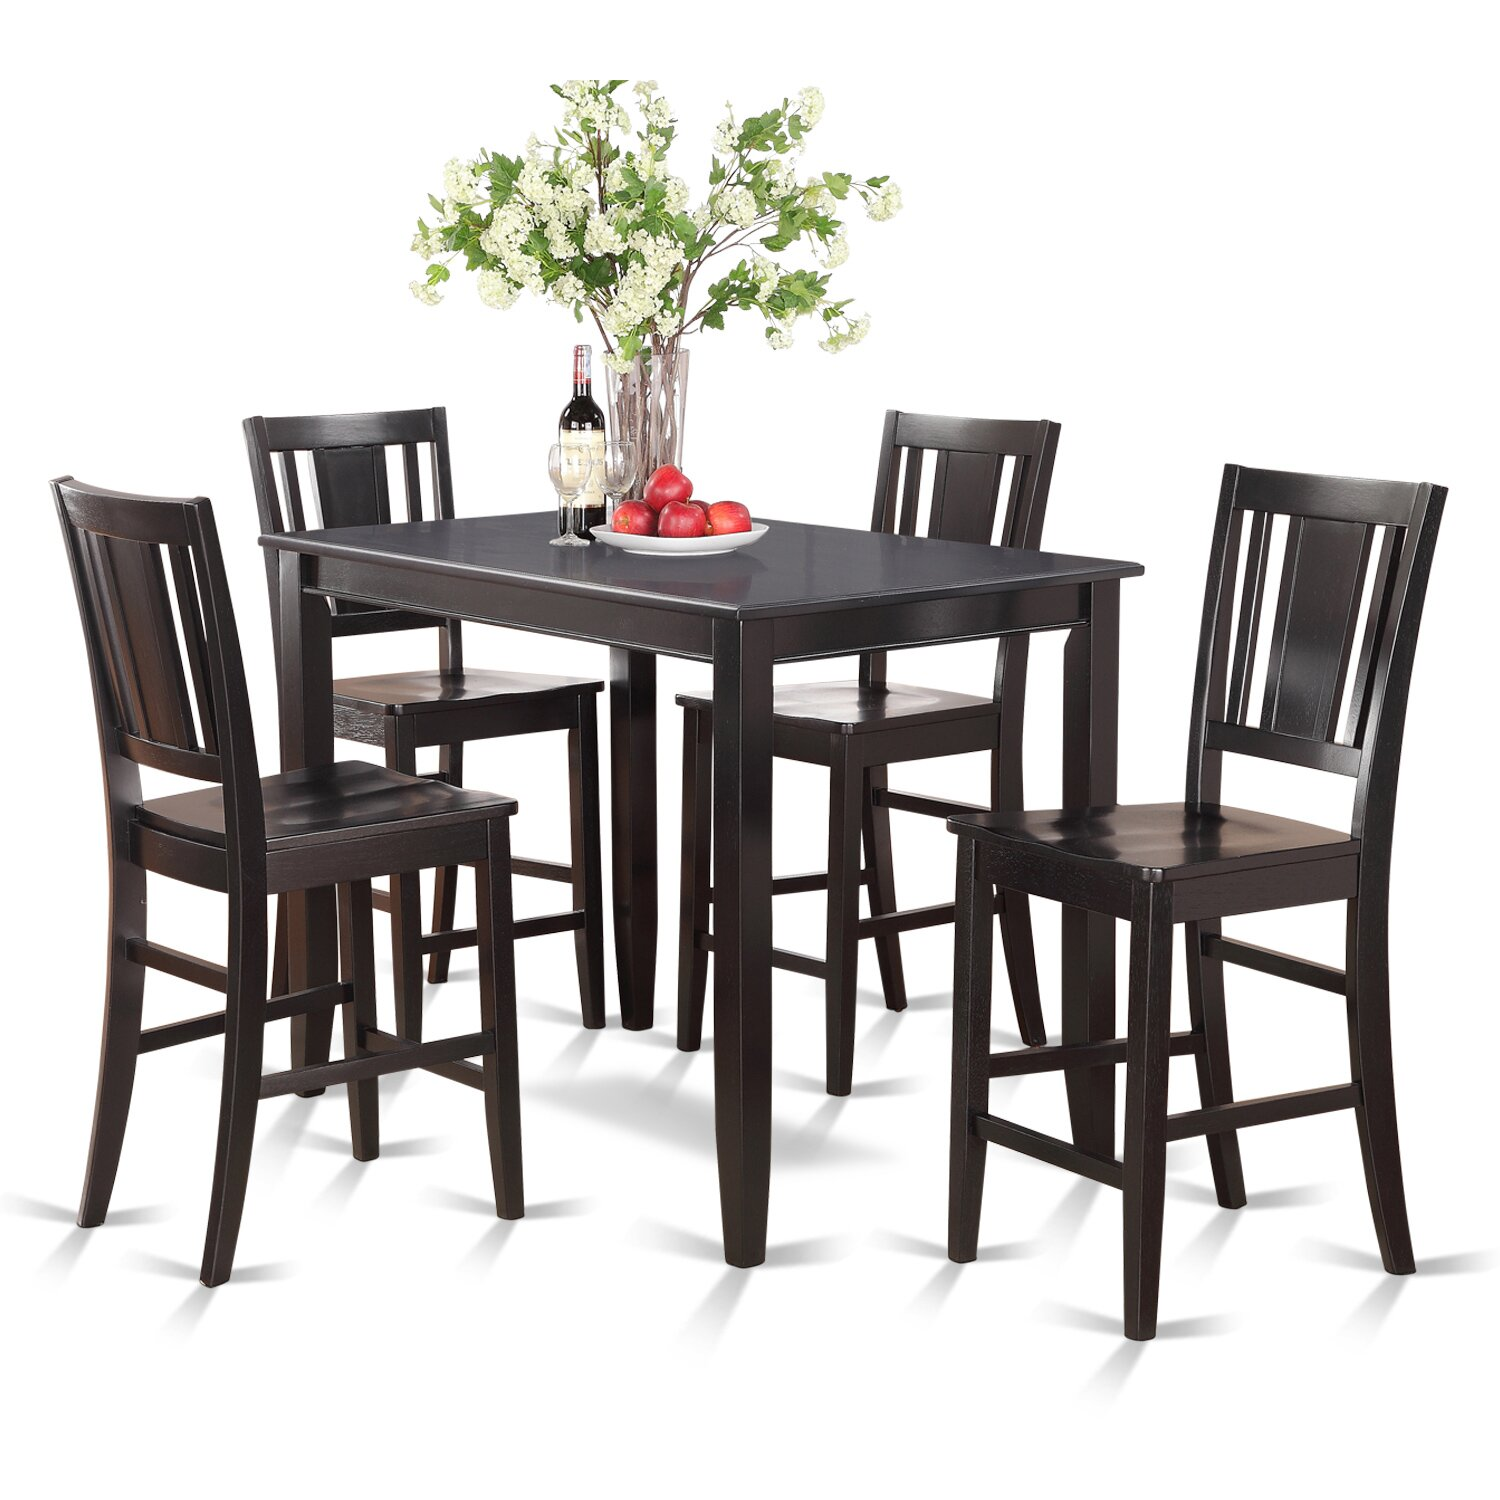 Wooden importers buckland 5 piece counter height dining for Wooden dining set